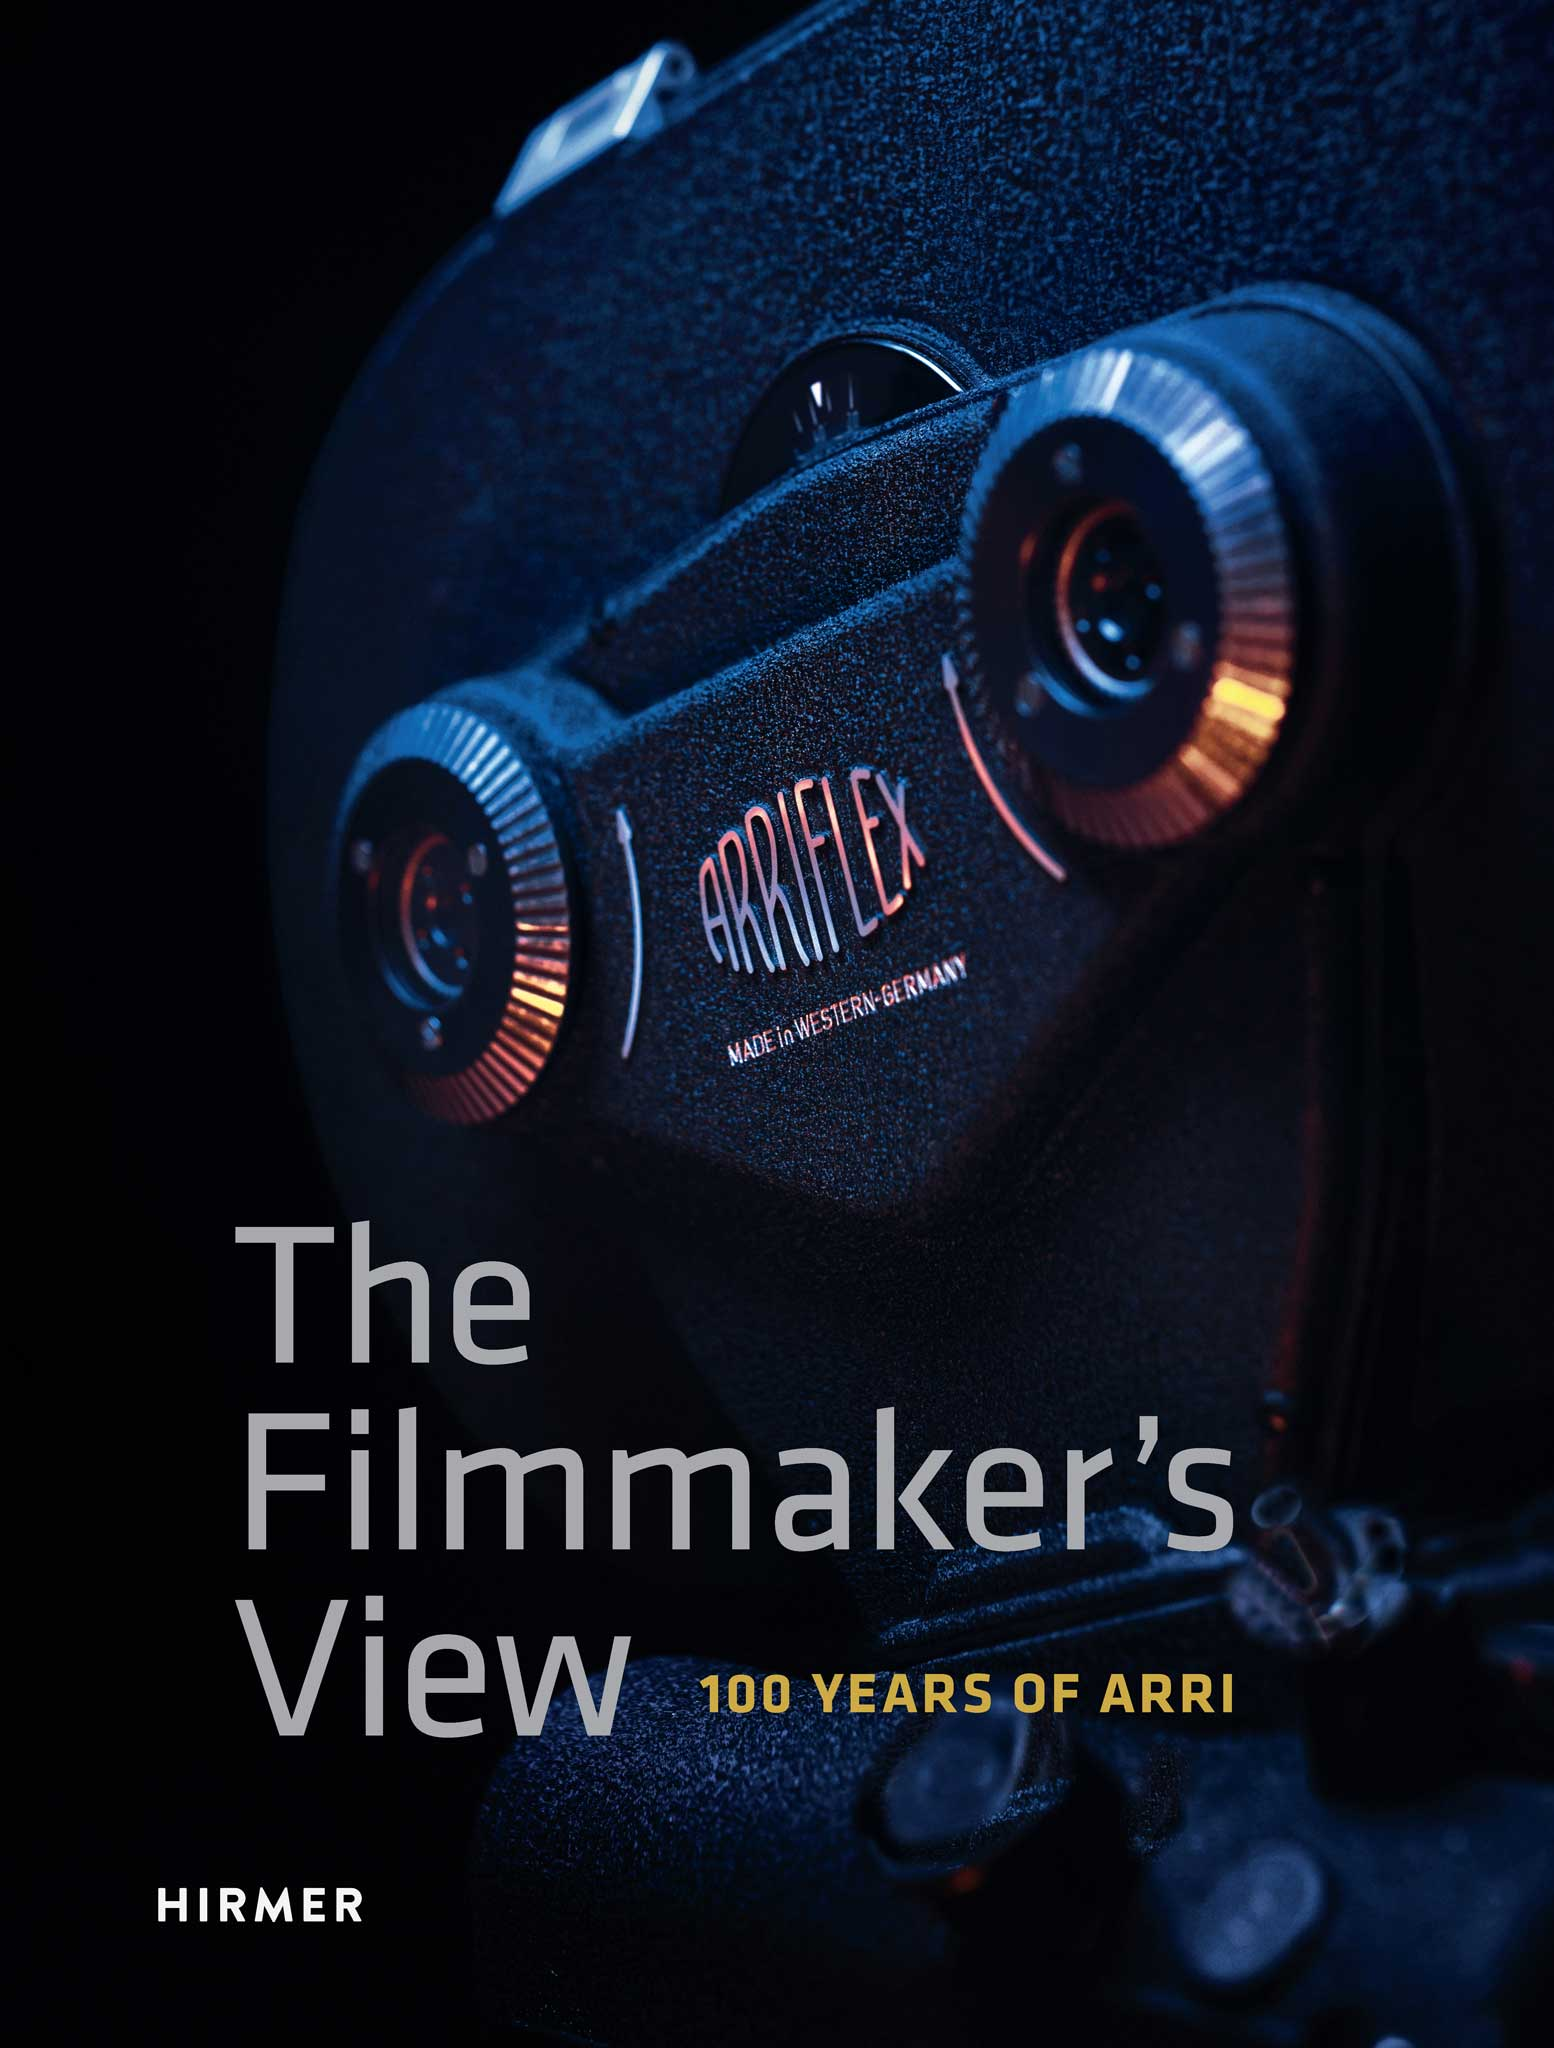 History Of Arri In A Century Cinema Film And Digital Times Real Lifelike Representation The Circuit To Get Better Look For More Centennial At People Who Used Products They Made This Lavishly Illustrated Book By